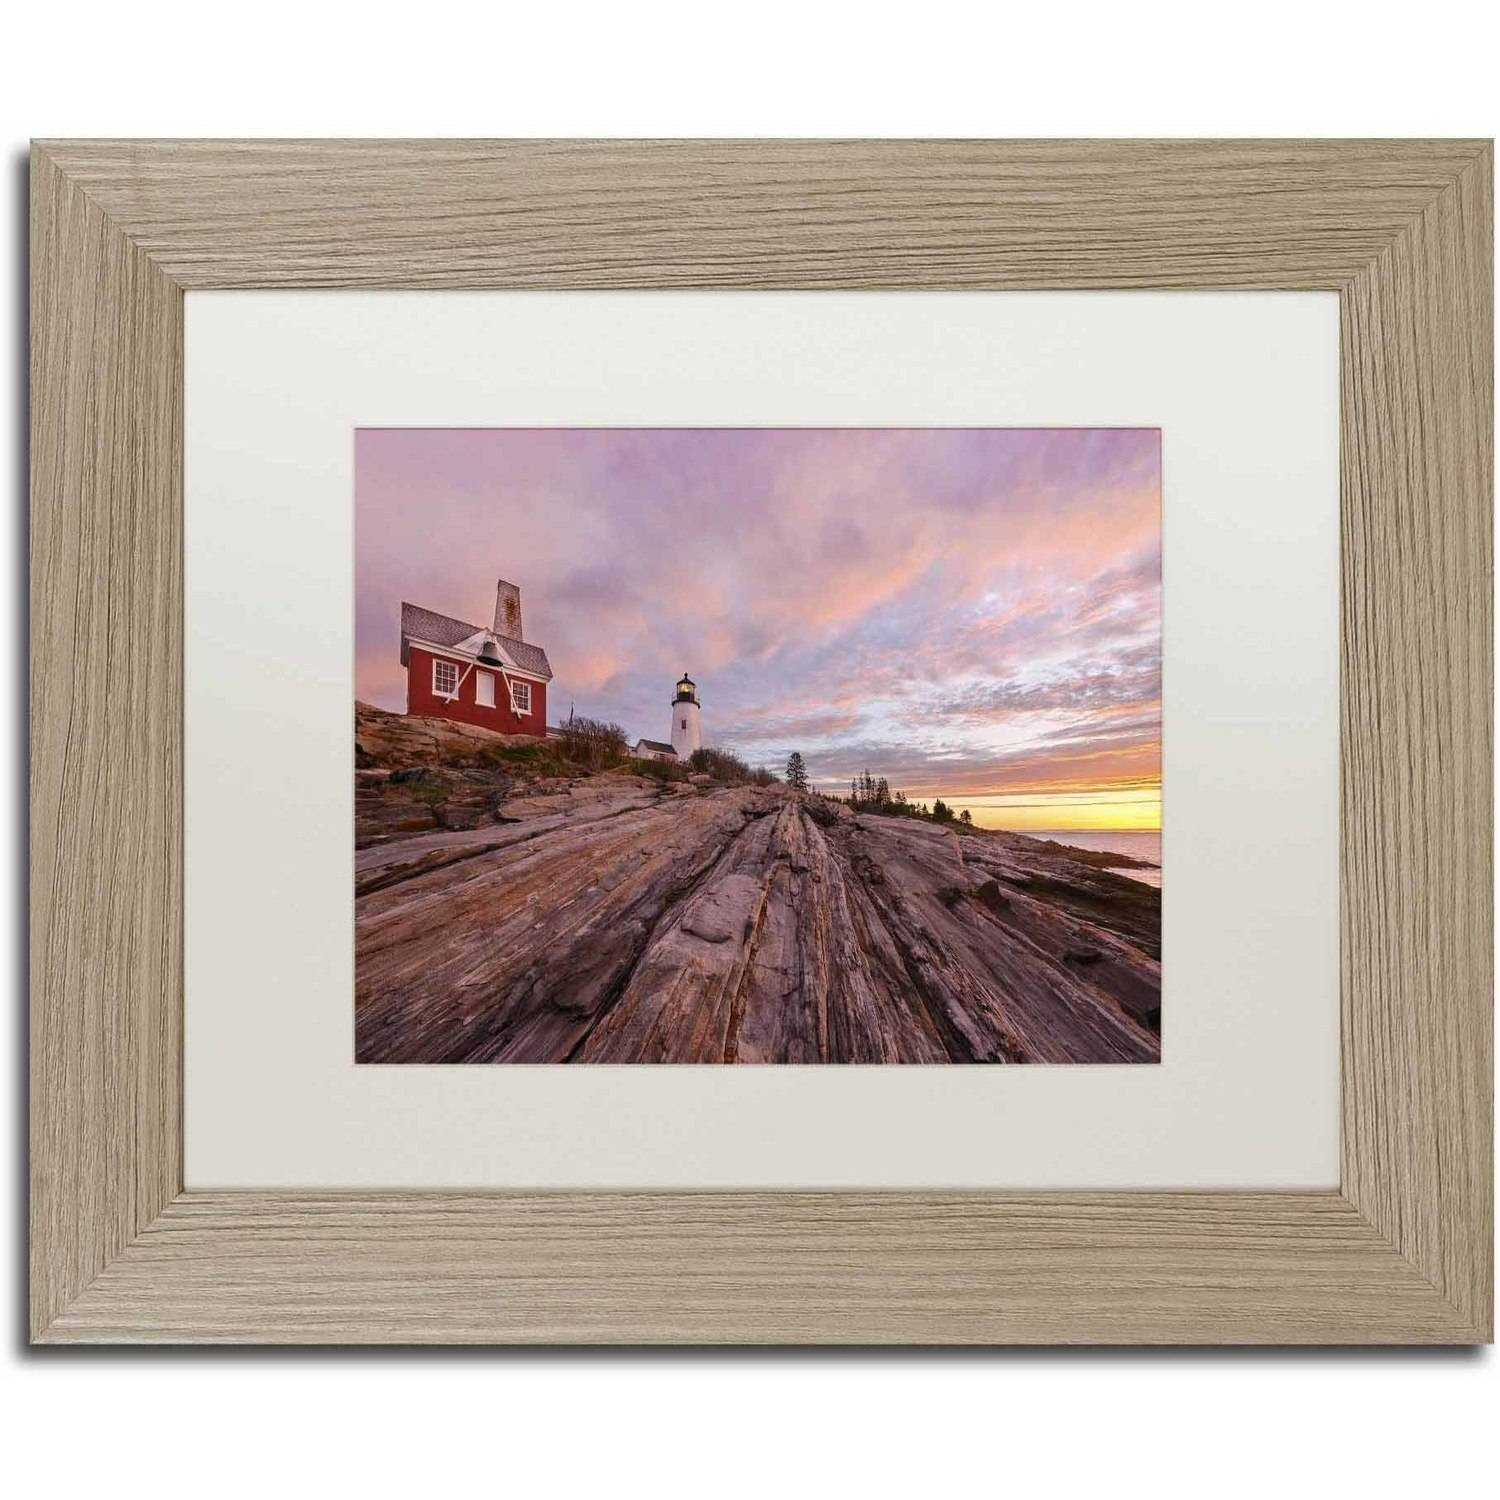 Trademark Fine Art 'Granite Marvel' Canvas Art by Michael Blanchette Photography, White Matte, Birch Frame